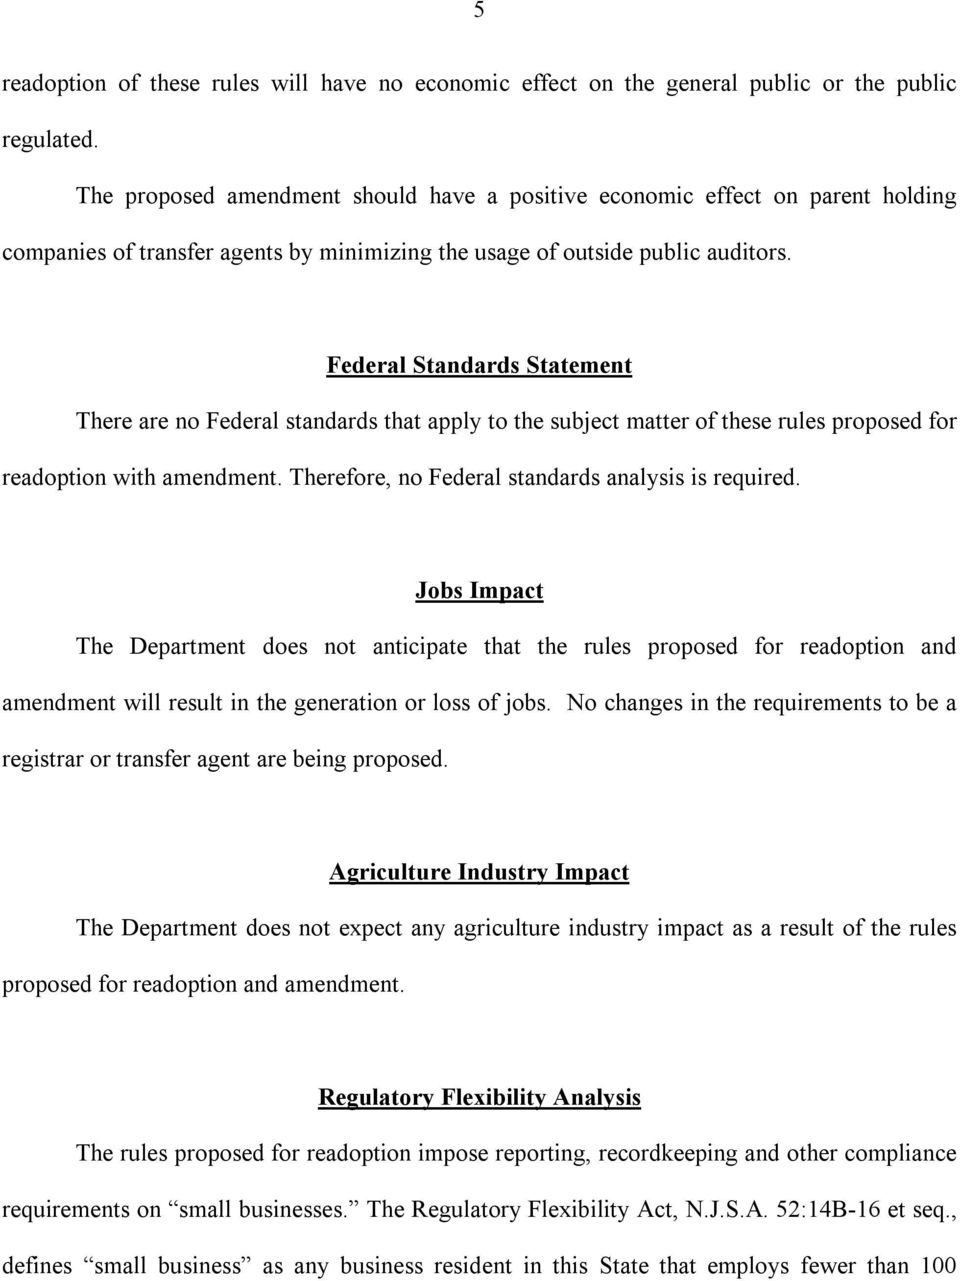 Federal Standards Statement There are no Federal standards that apply to the subject matter of these rules proposed for readoption with amendment. Therefore, no Federal standards analysis is required.